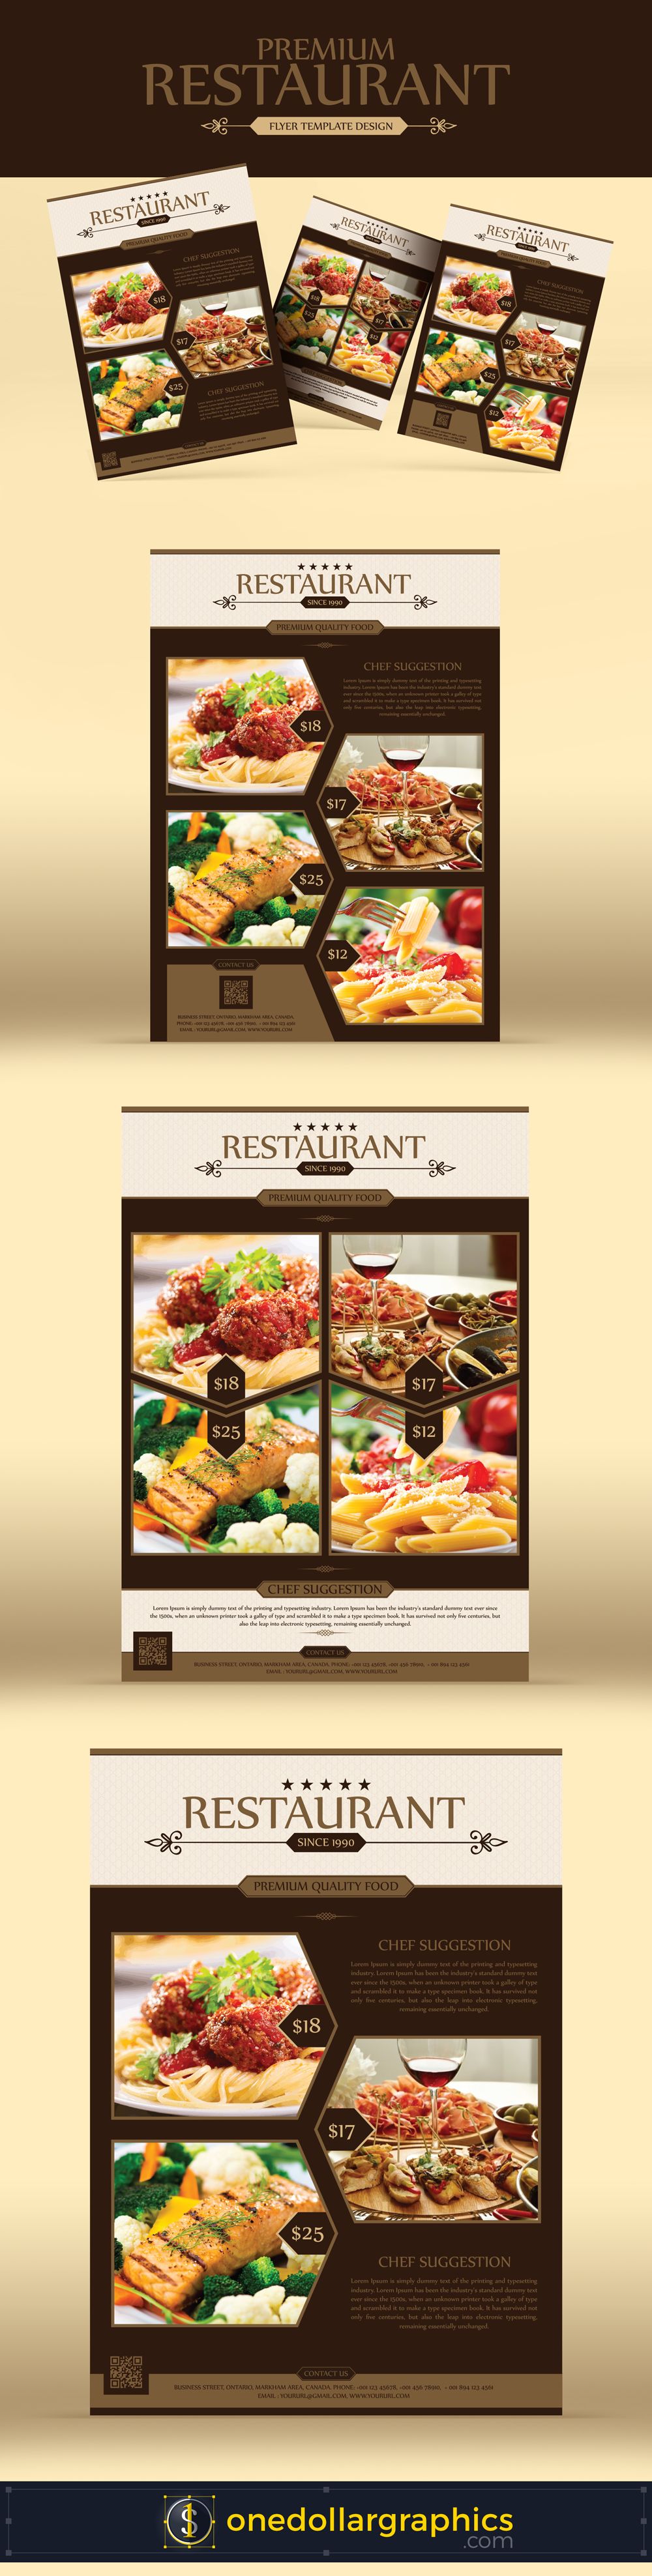 Premium-Restaurant-Flyer-Template-Design-2017